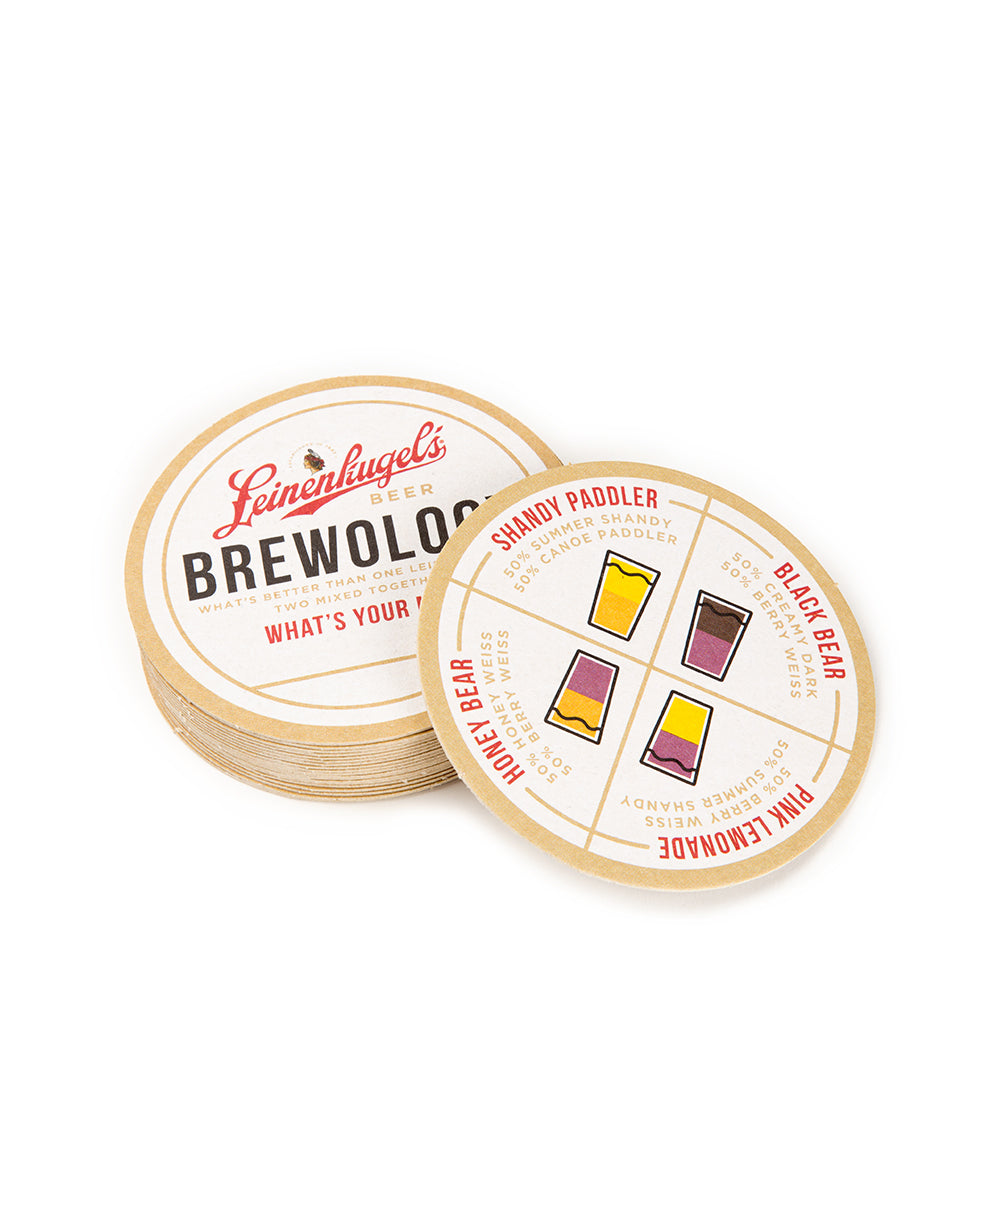 BREWOLOGY COASTER PACK